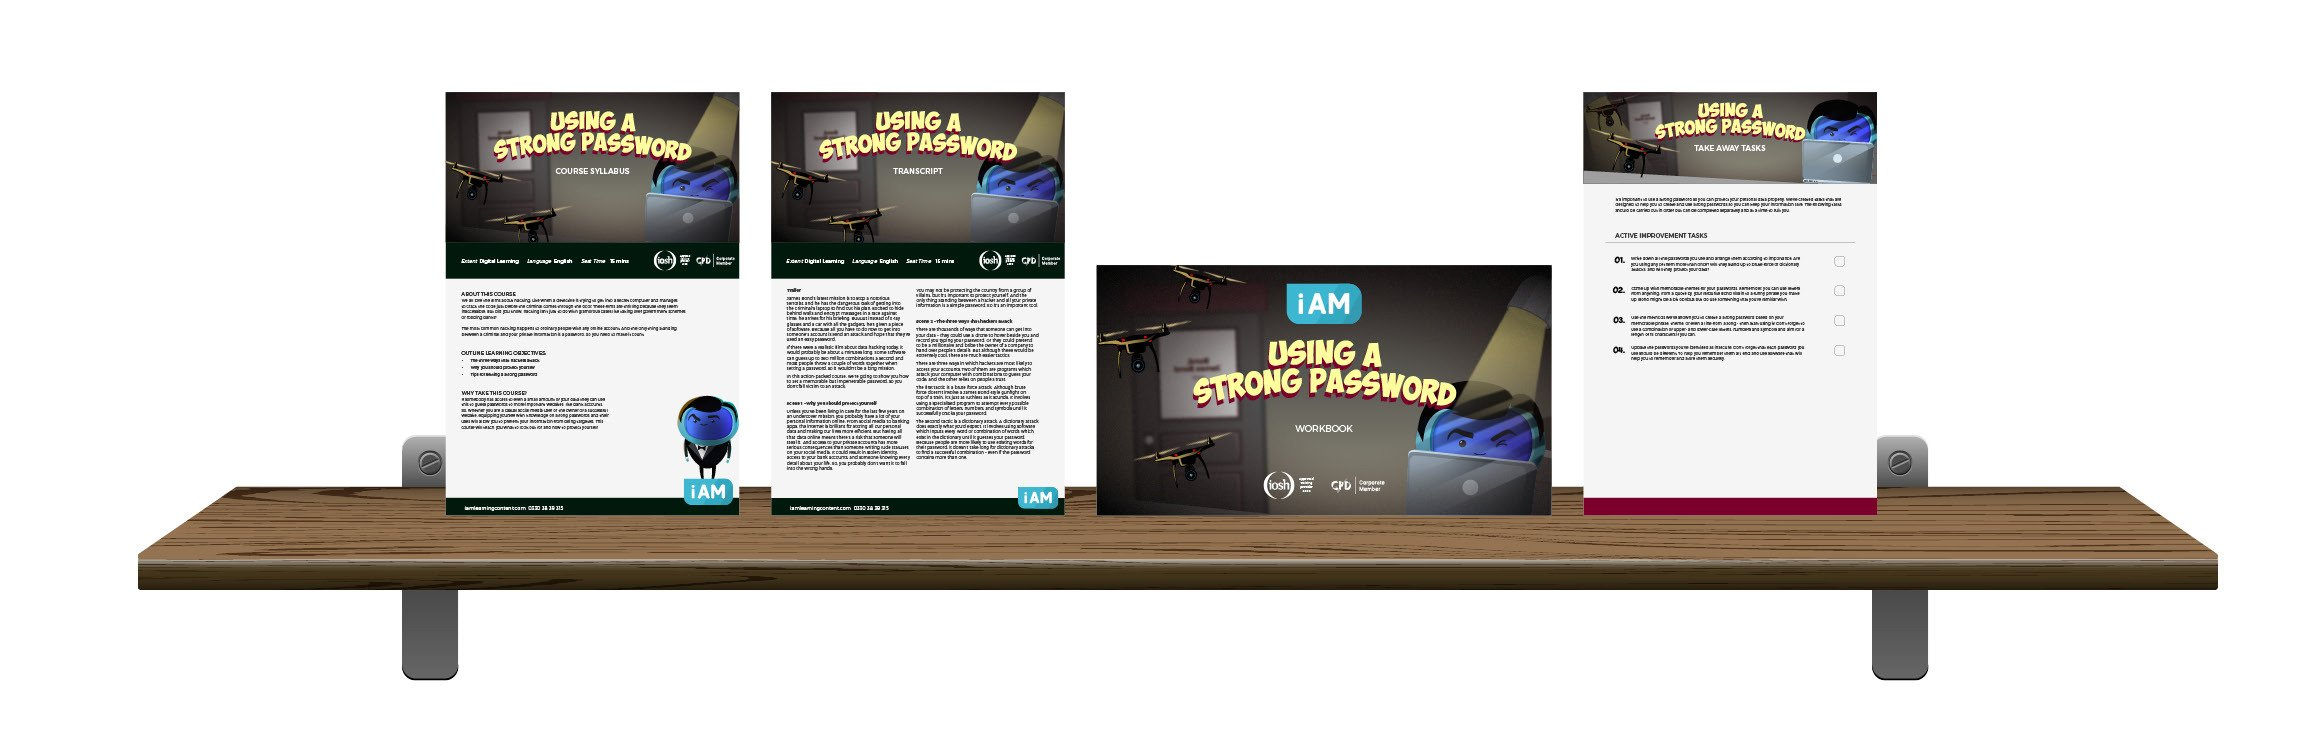 Using a Strong Password - Landing Page5